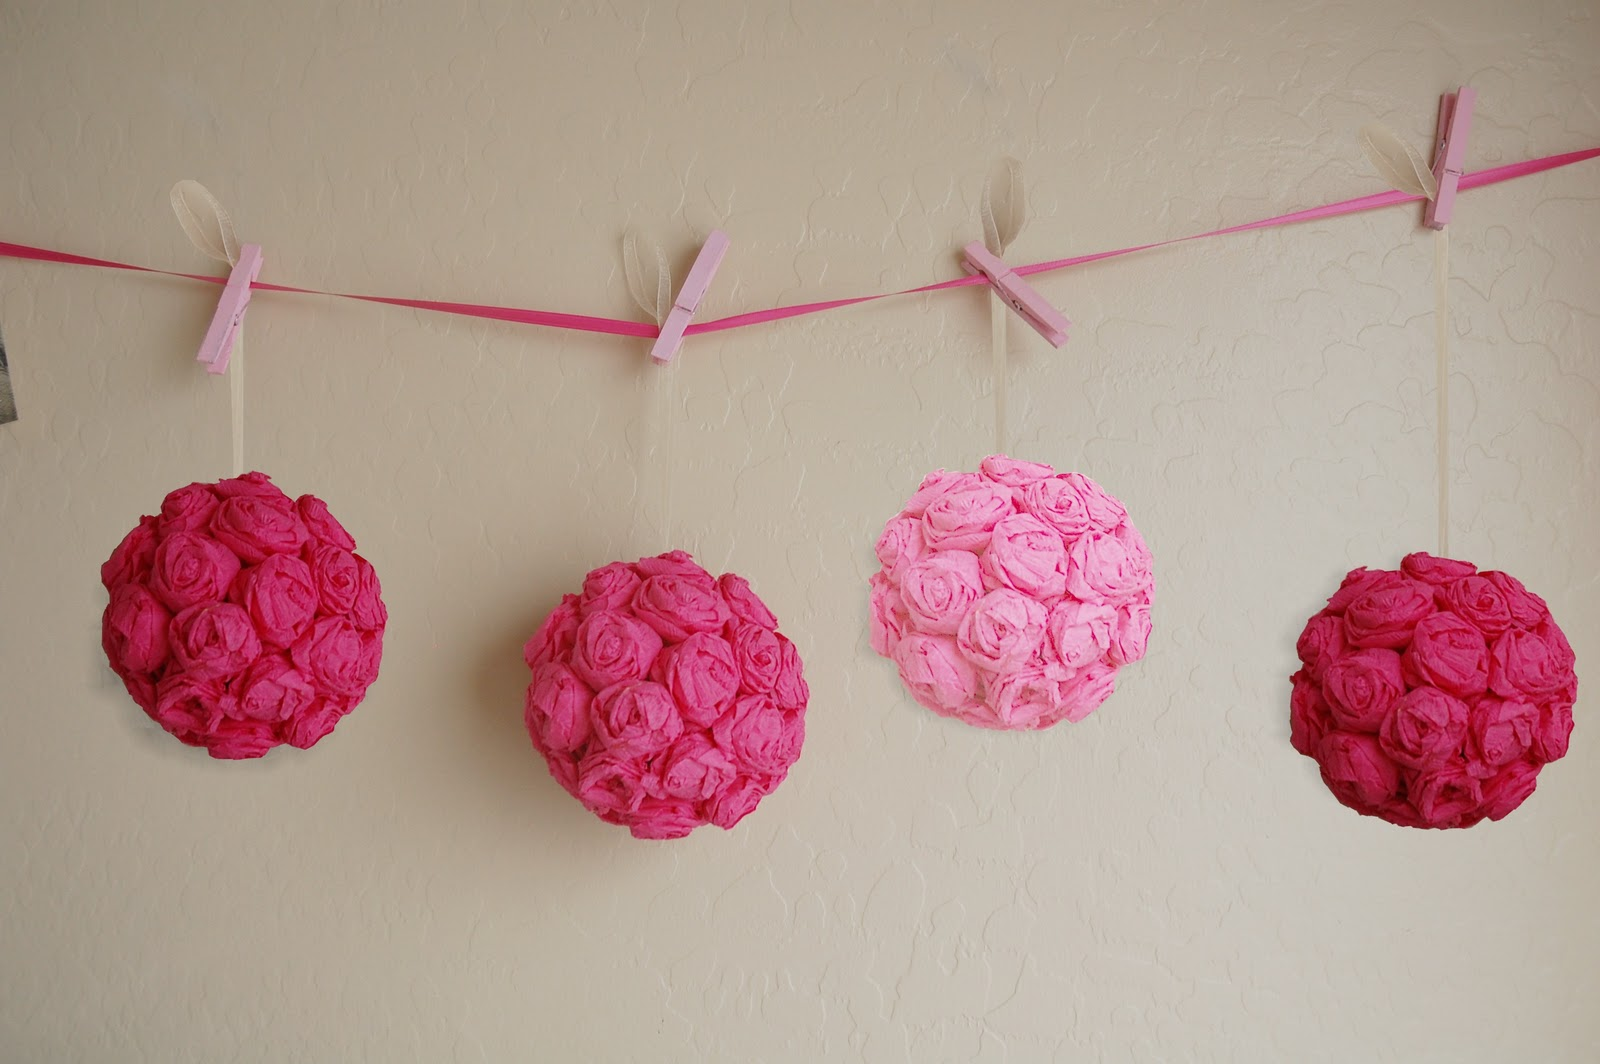 Awesome paper flower pomander ball pictures inspiration wedding how to crepe paper rose pomander ball and mightylinksfo Choice Image